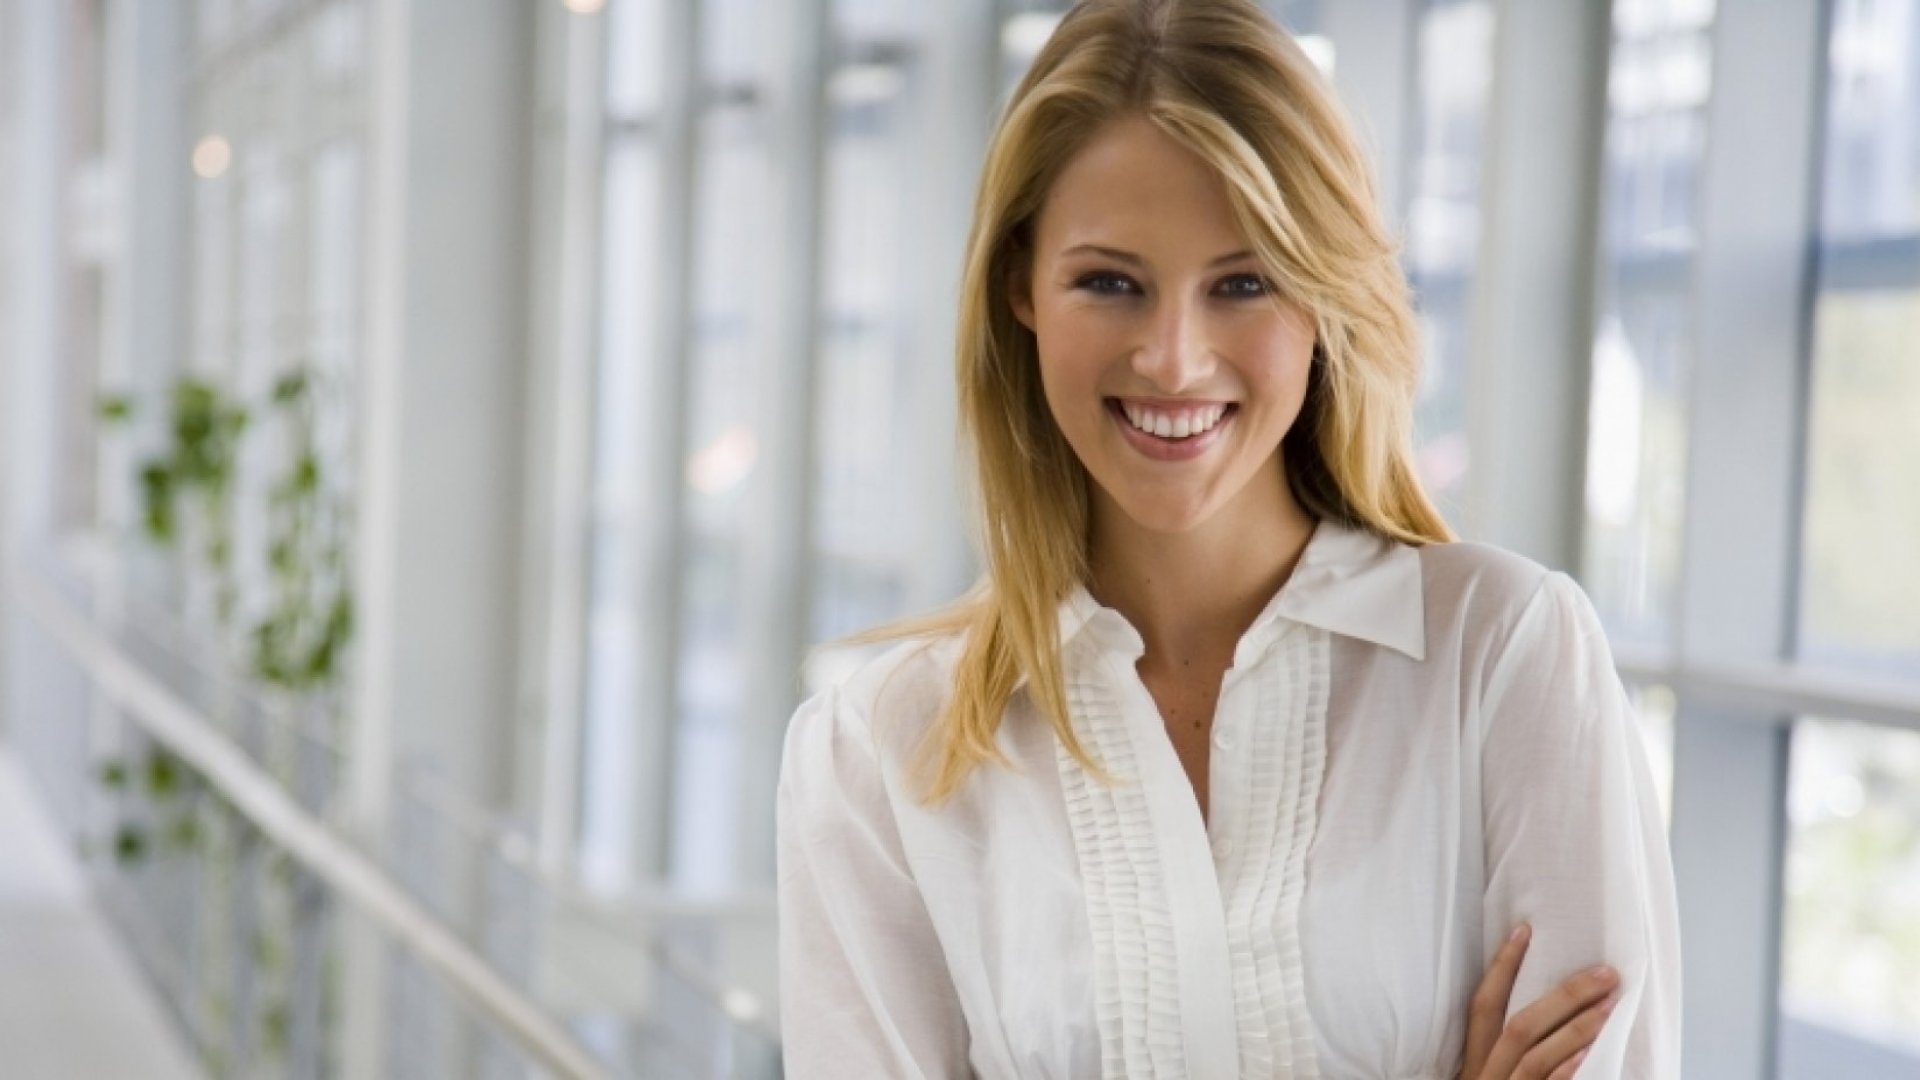 7 Surprising Ways to Build More Confidence Right Now